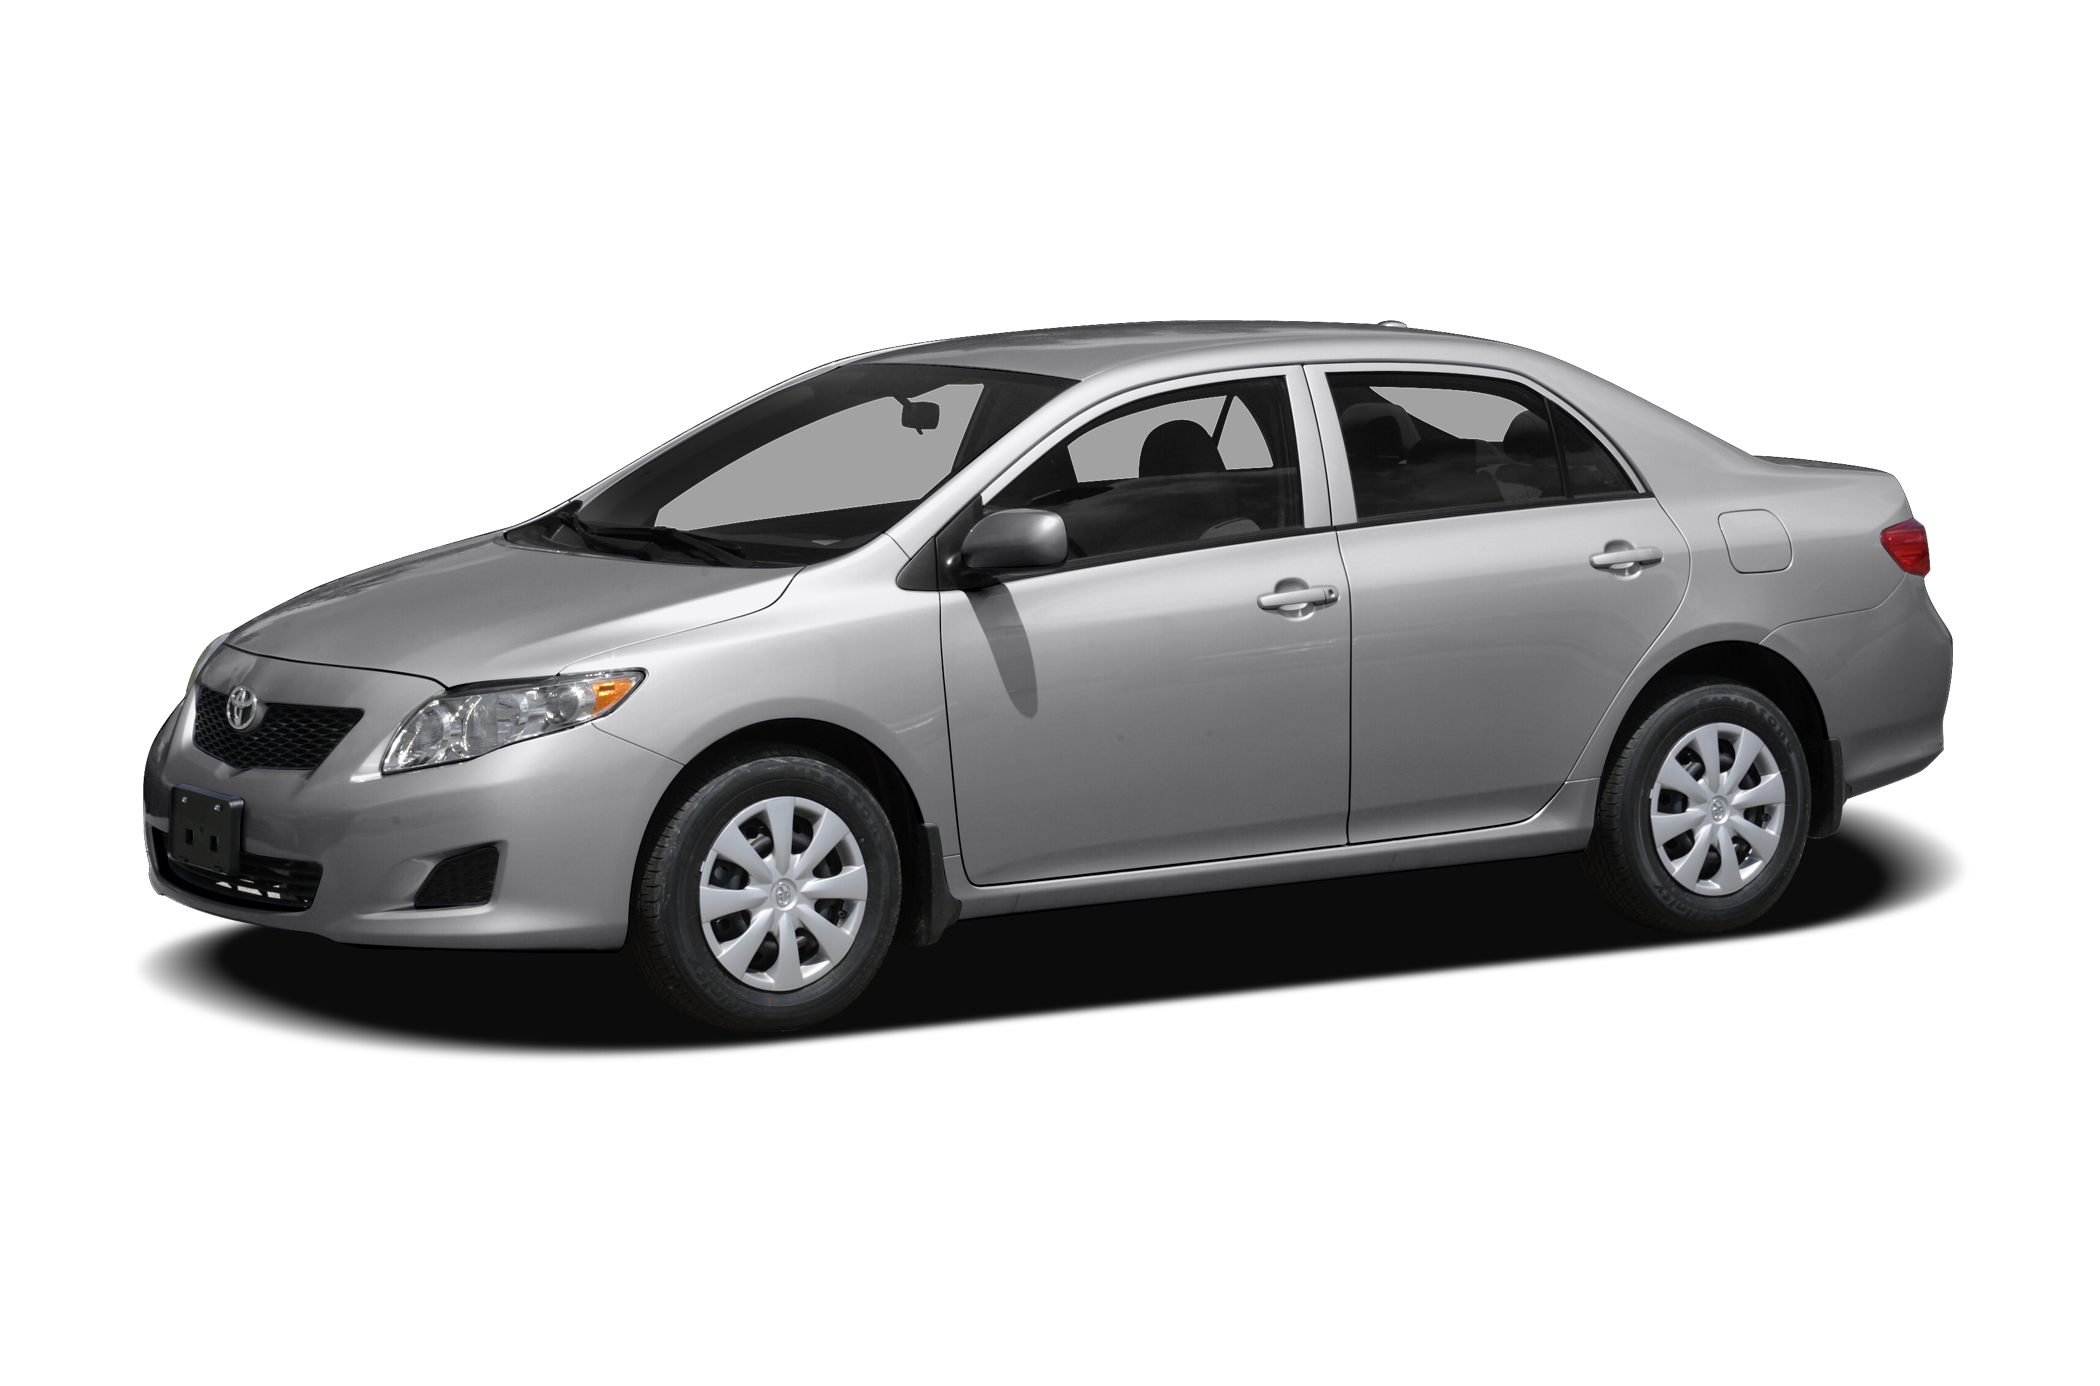 2010 Toyota Corolla Sedan for sale in Beaufort for $10,989 with 88,581 miles.